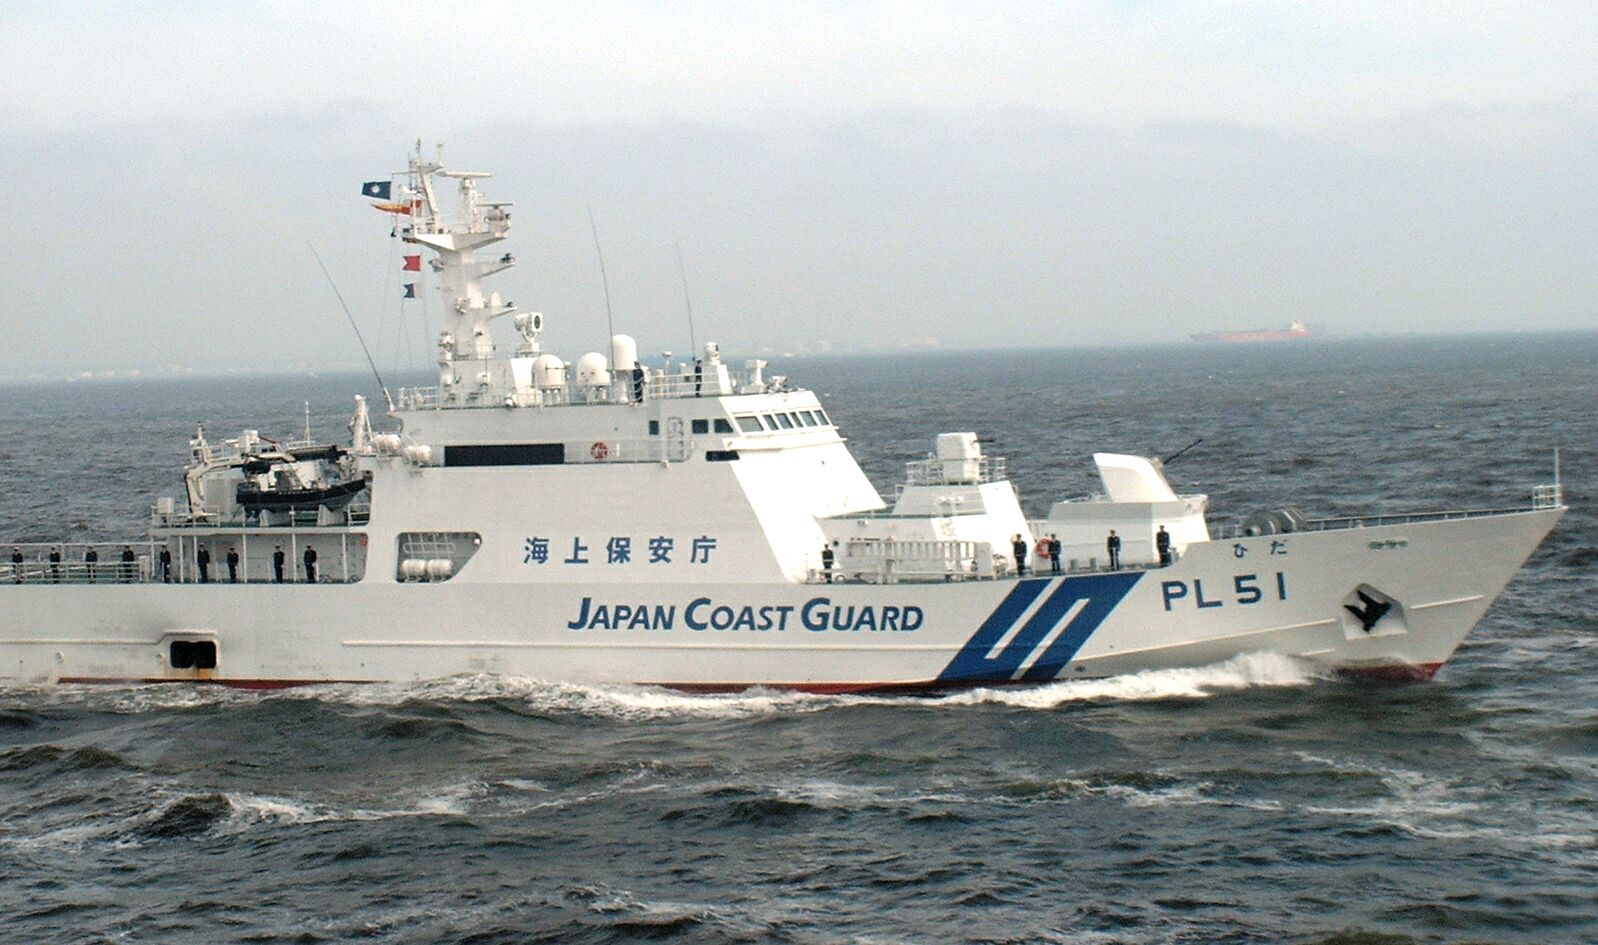 Japanese Coastguard rescued one person in search for missing livestock carrier